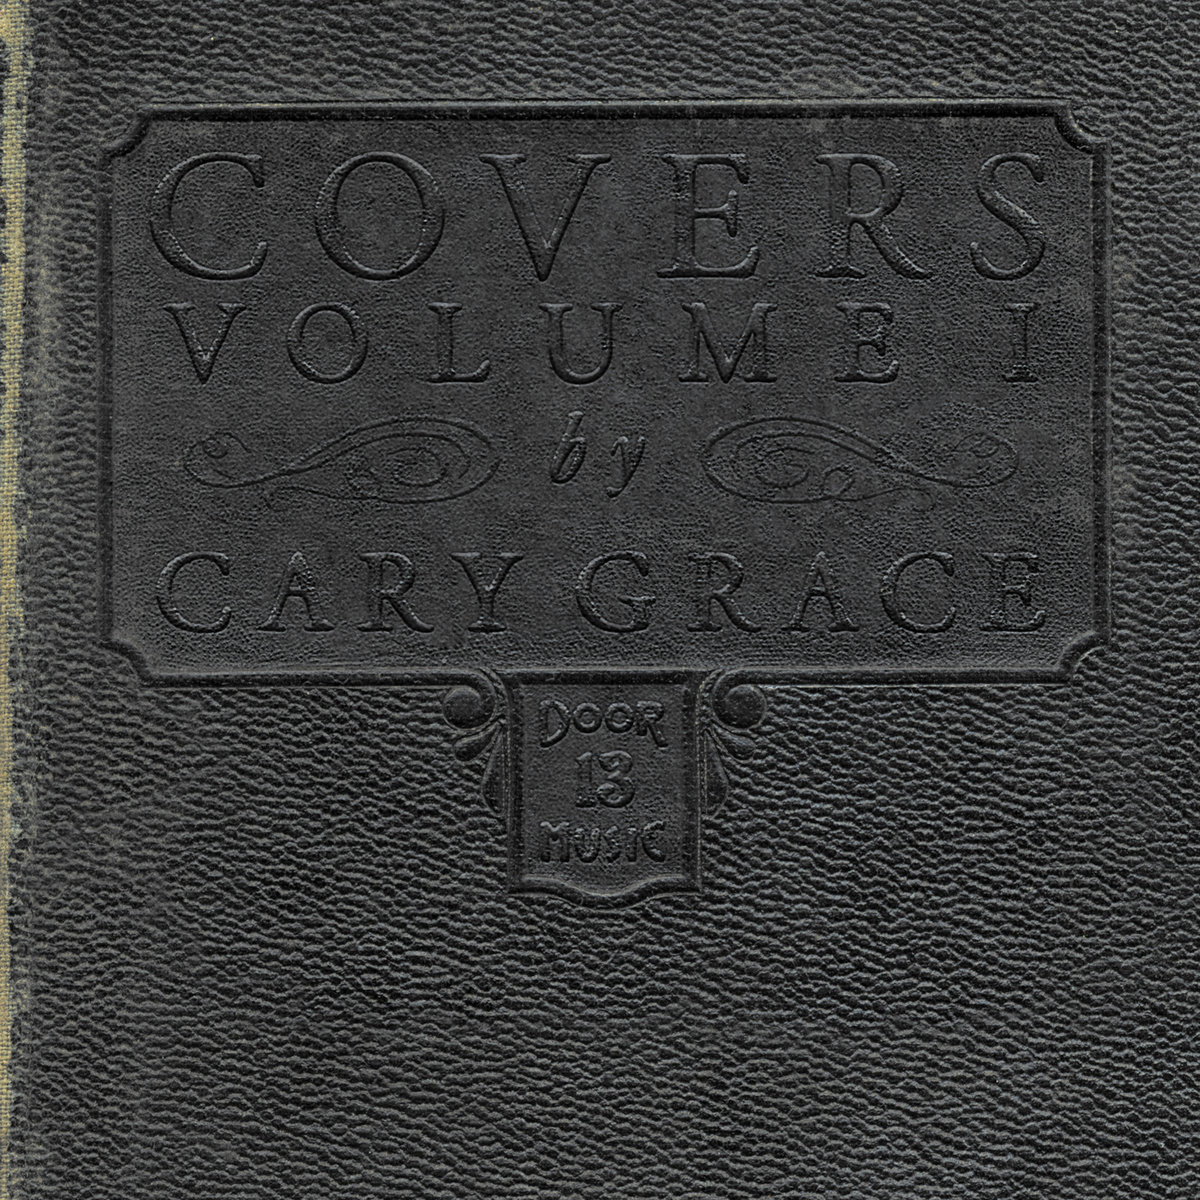 Bildresultat för Cary Grace covers